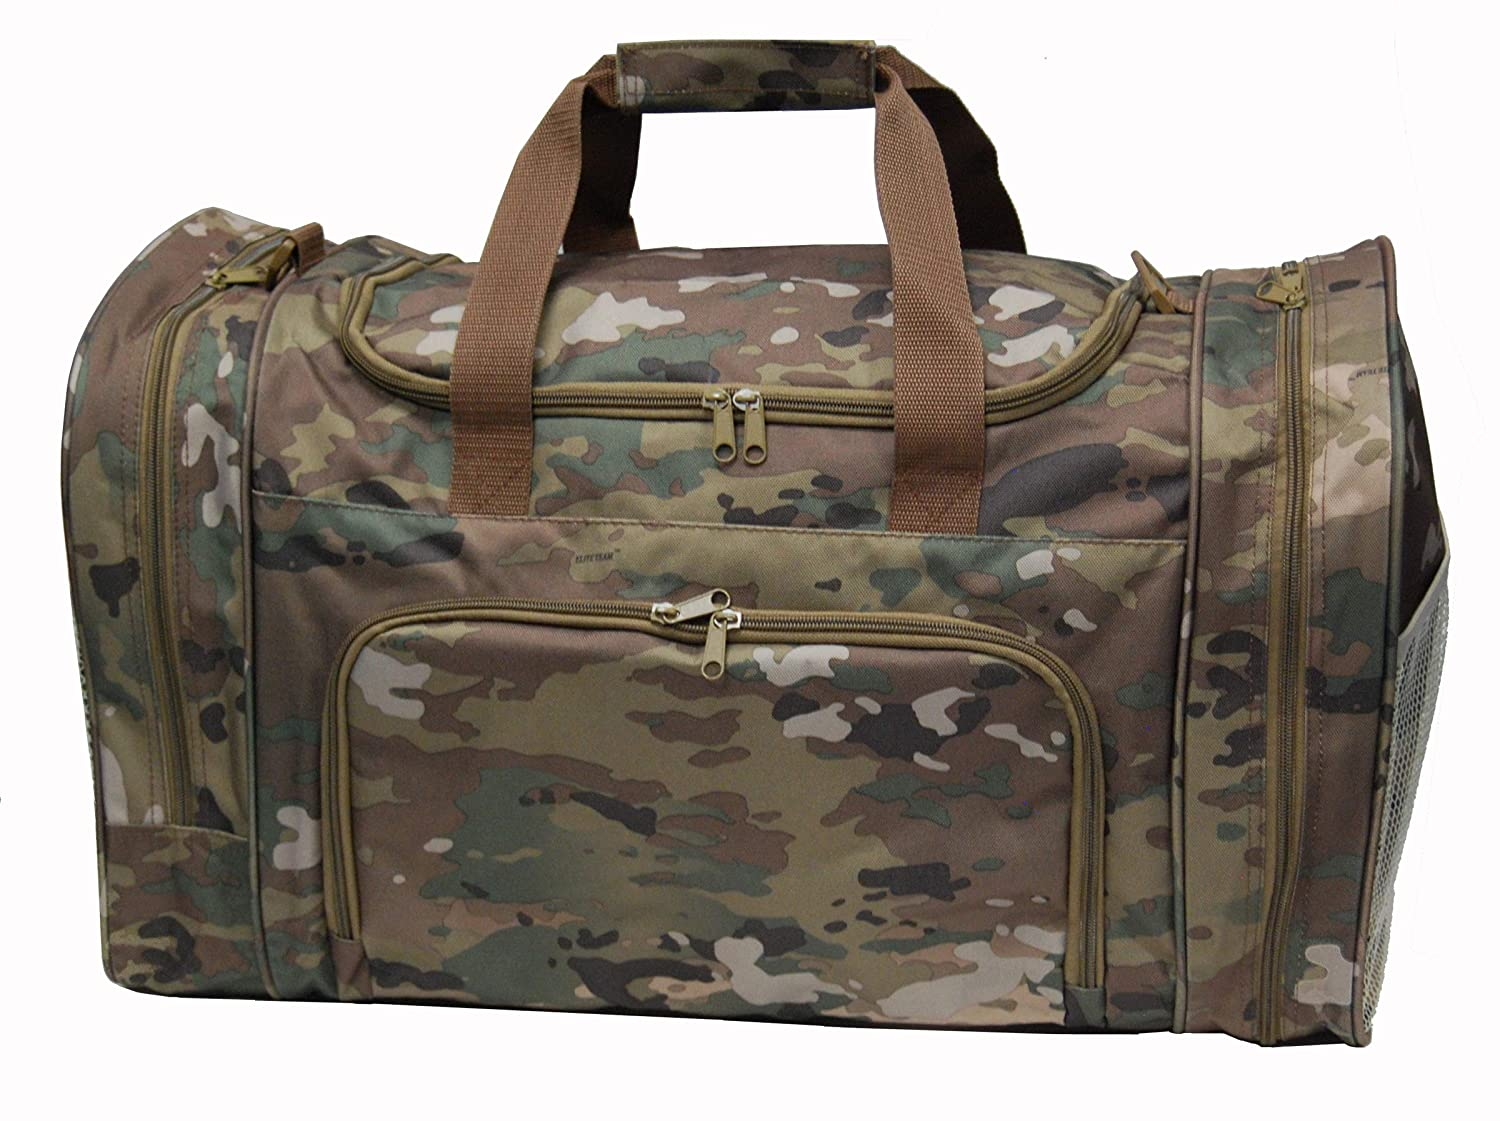 Amazon.com  Army Military OCP Digital Camo Overnight Gym Duffel Travel Bag  with Cell Phone Pocket  Sports   Outdoors d183f82f17a